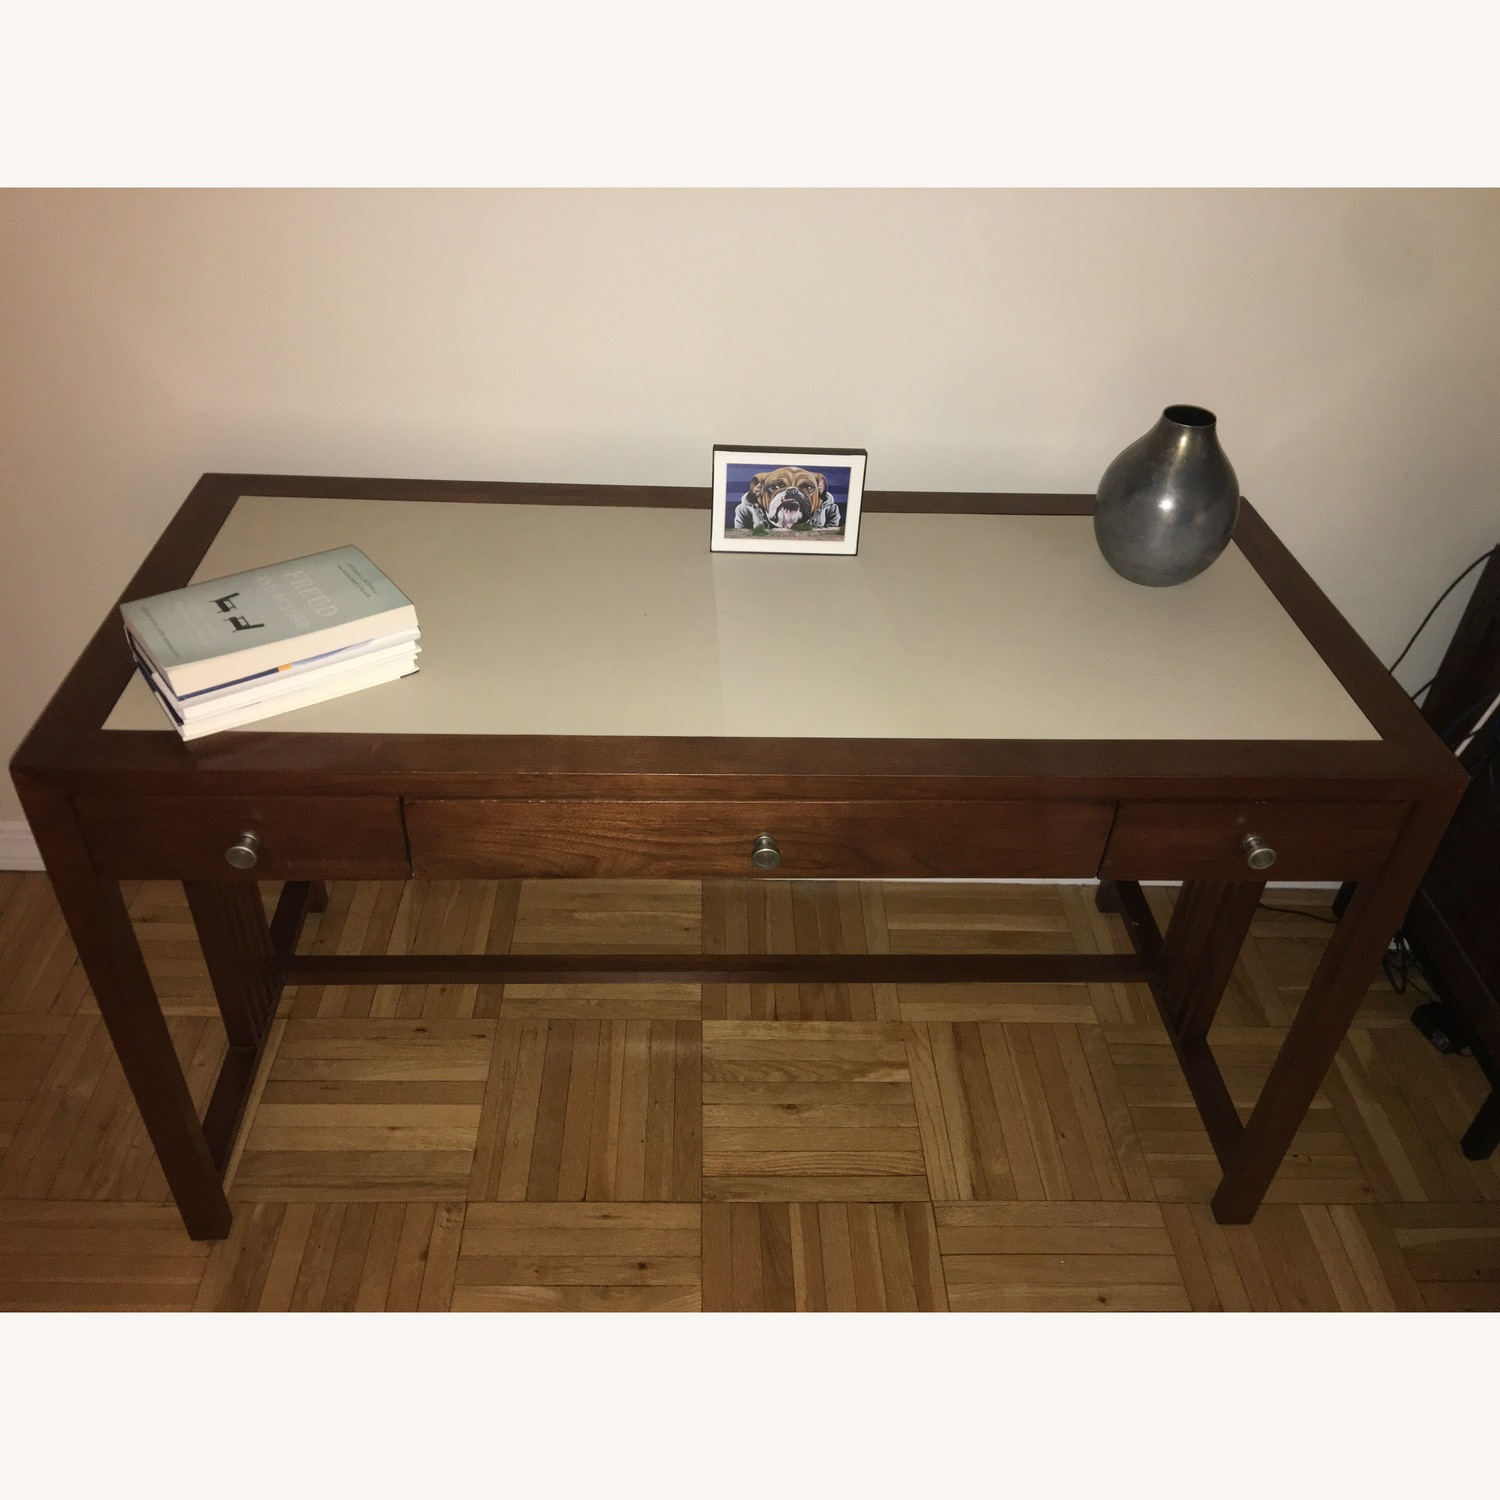 Crate & Barrel Adler Desk - image-2